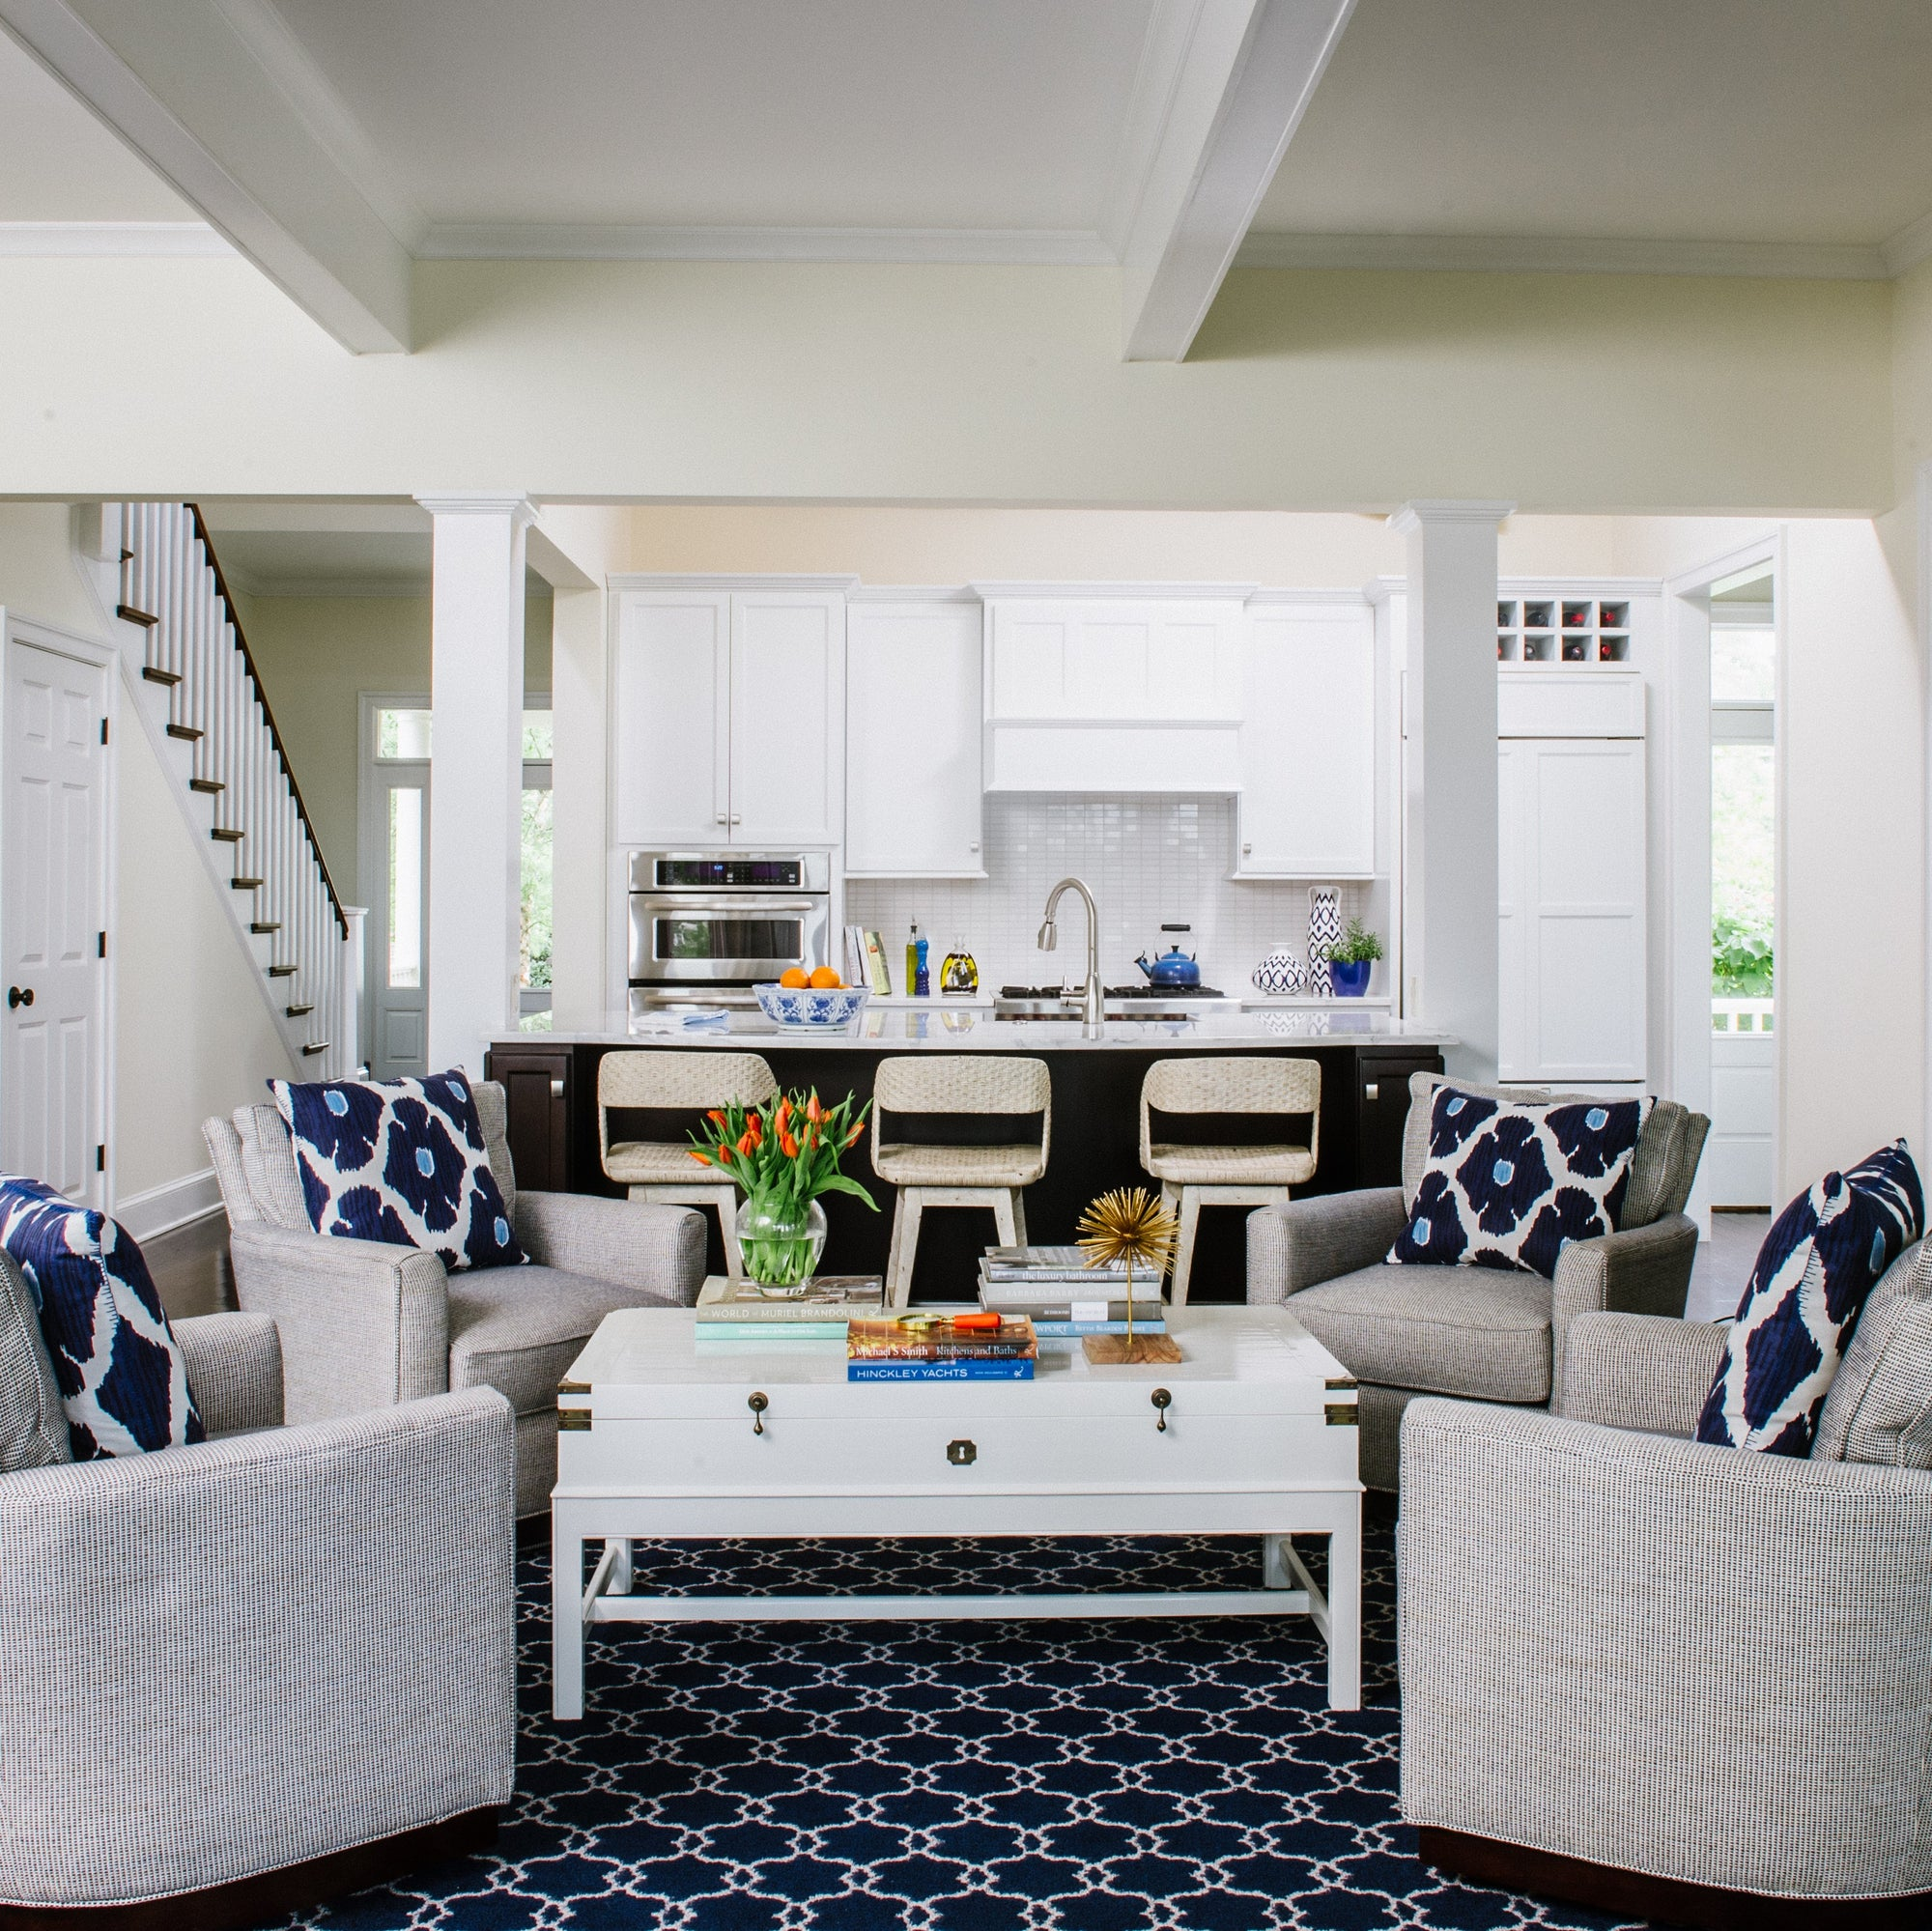 Blue & white conversation area just off a white kitchen. Jamie Merida Interiors.